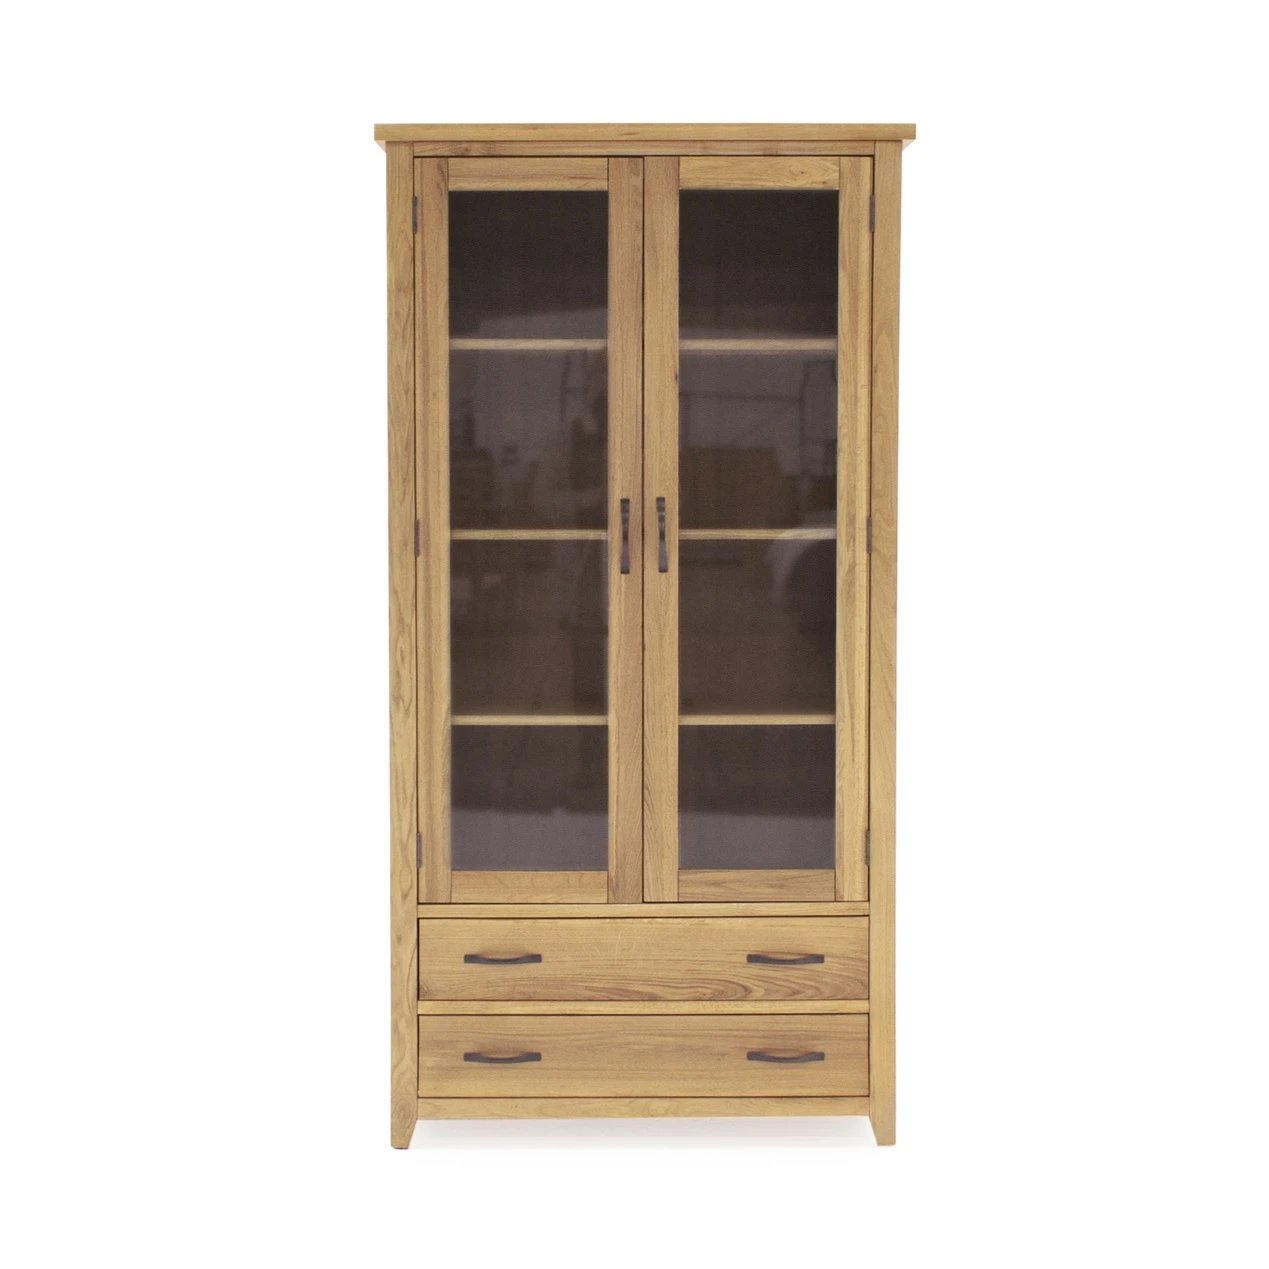 Rore Display Cabinet